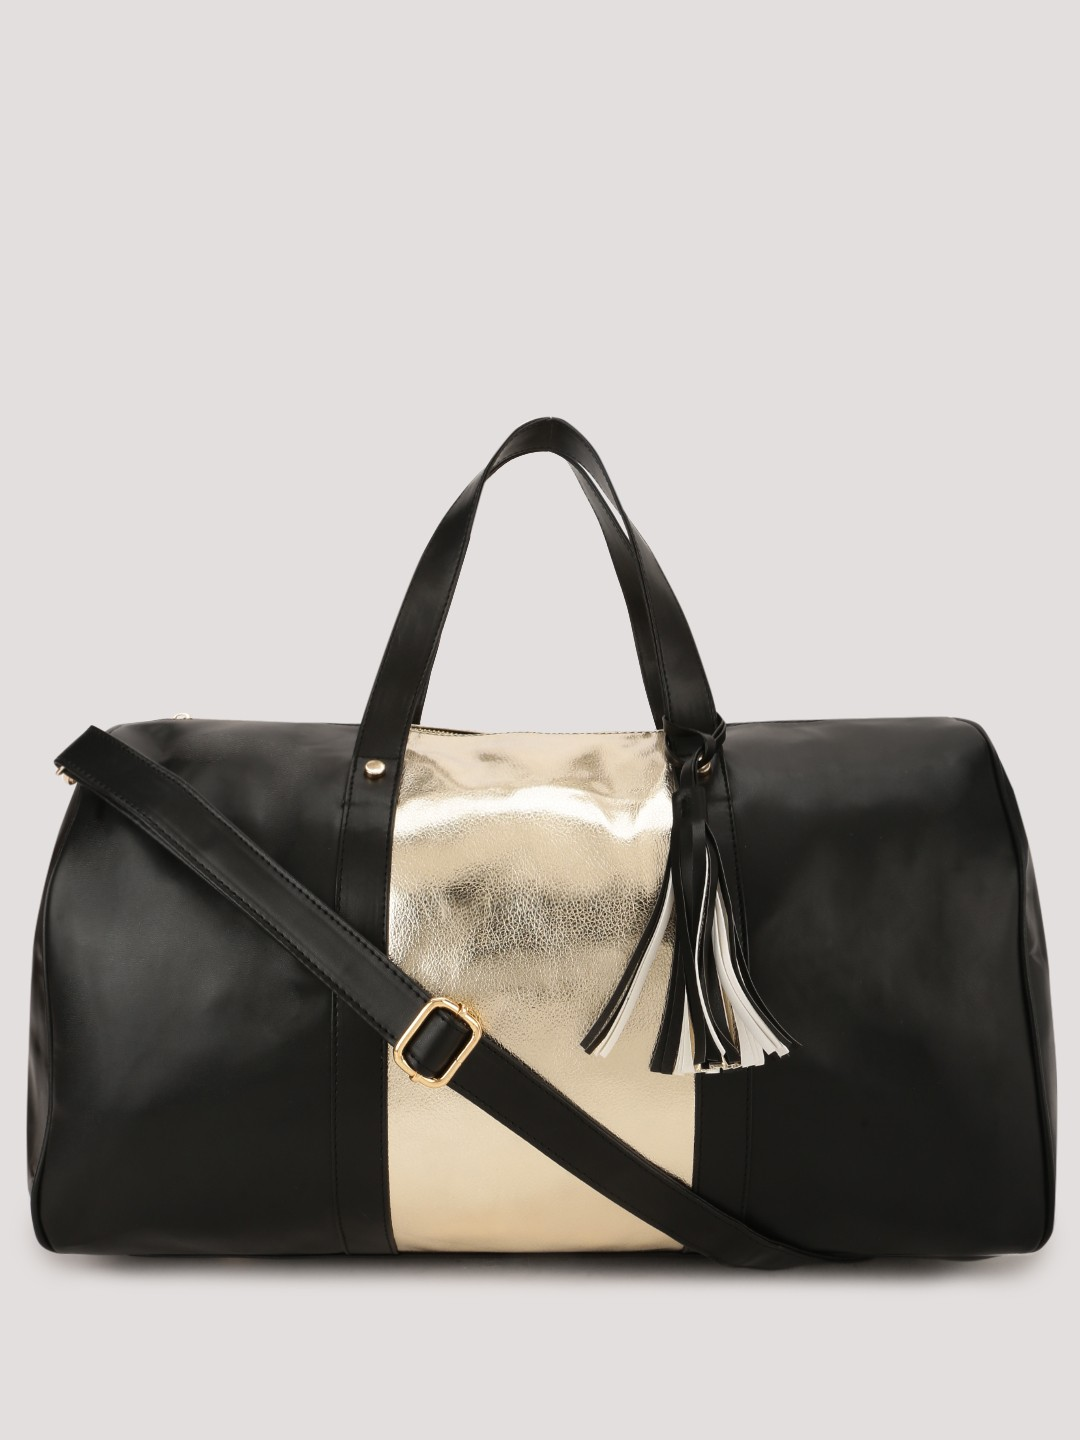 Travel Bags Online India Bags More